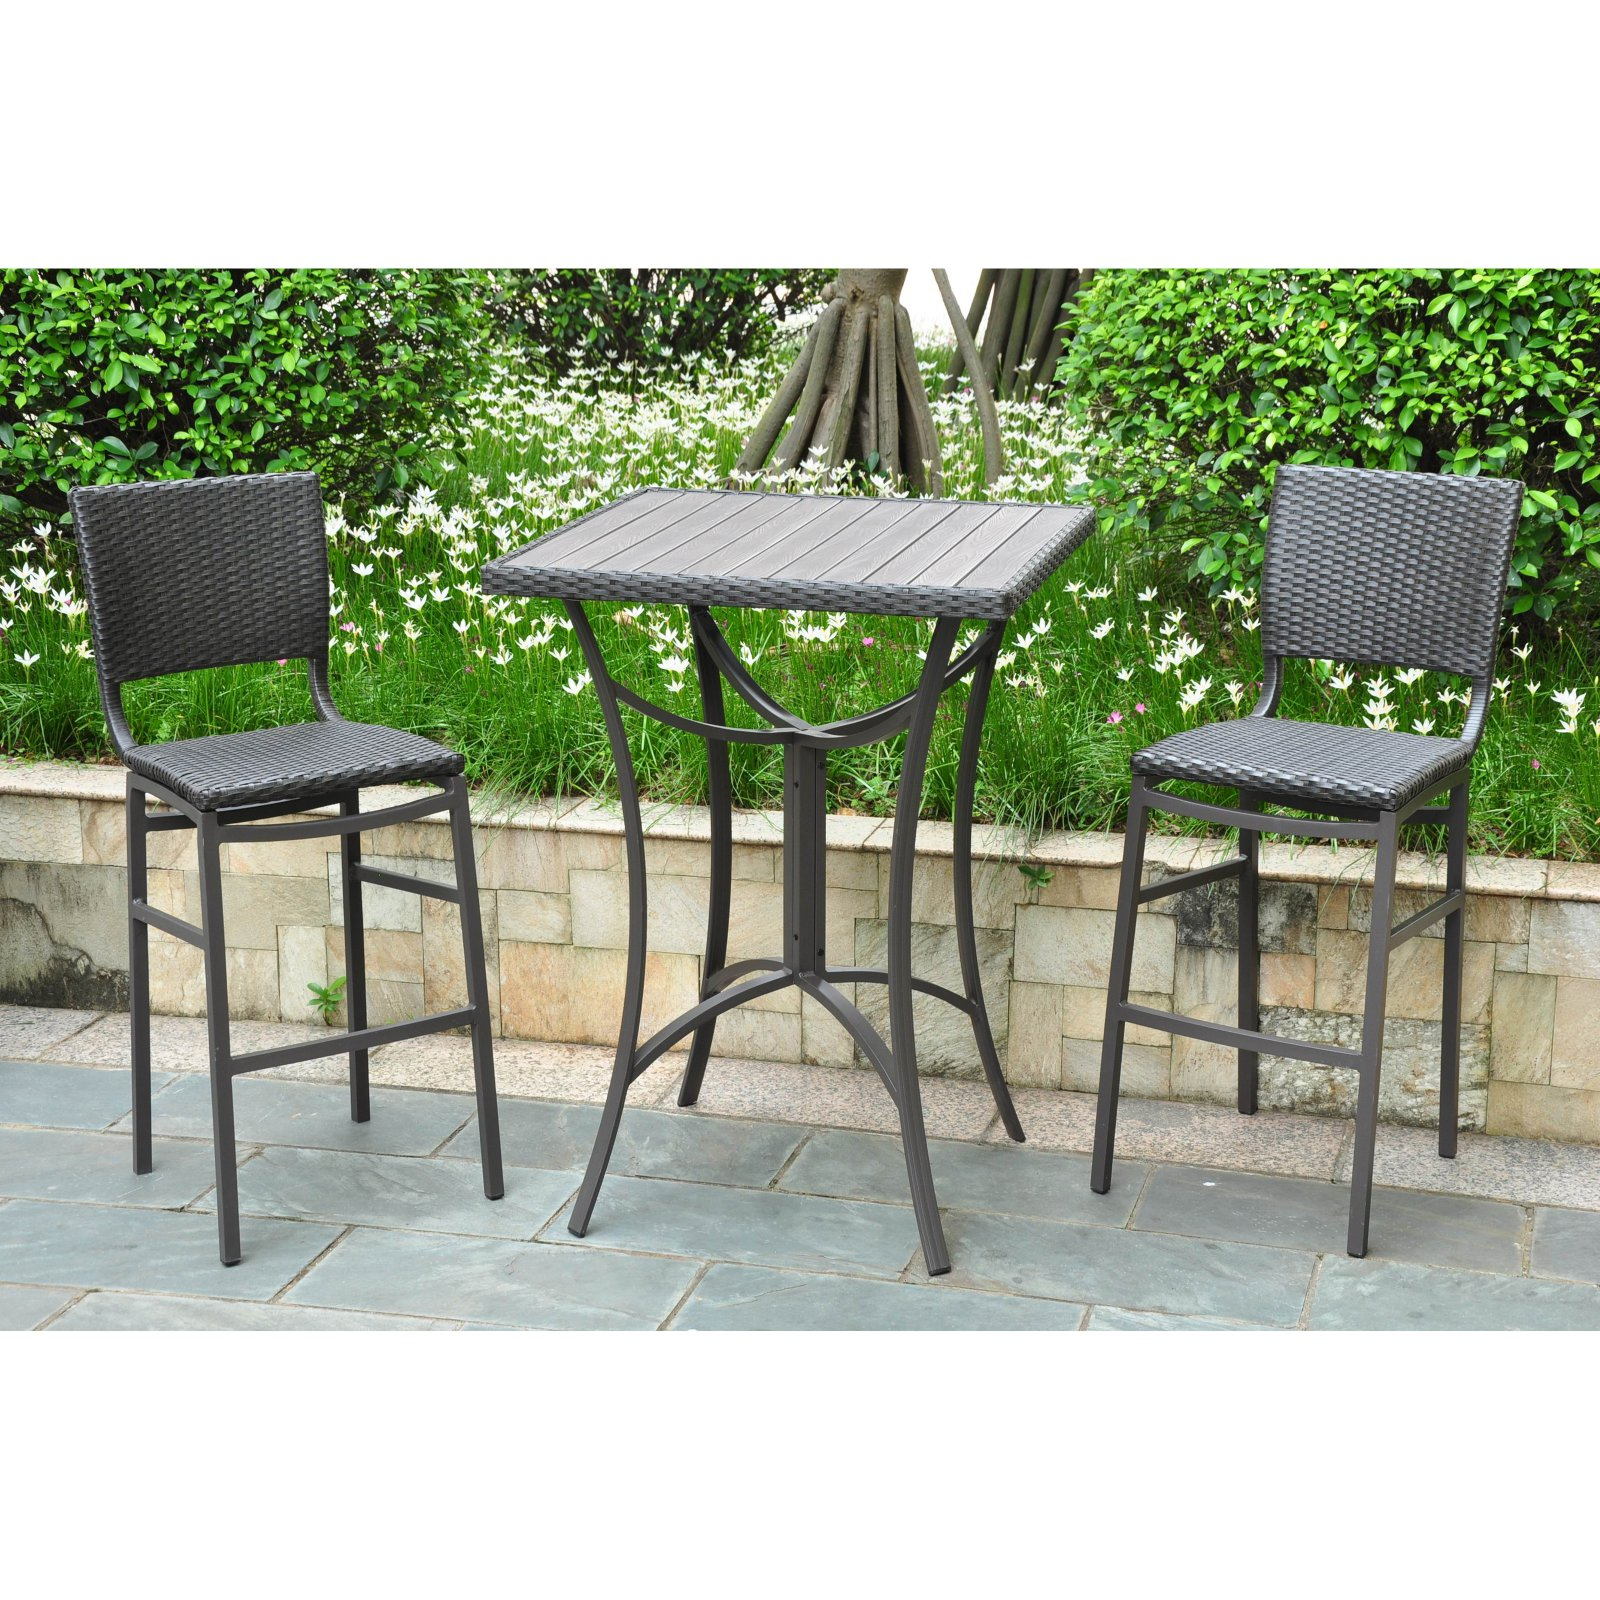 International Caravan Barcelona Resin Wicker Bar Height Bistro Set by International Caravan